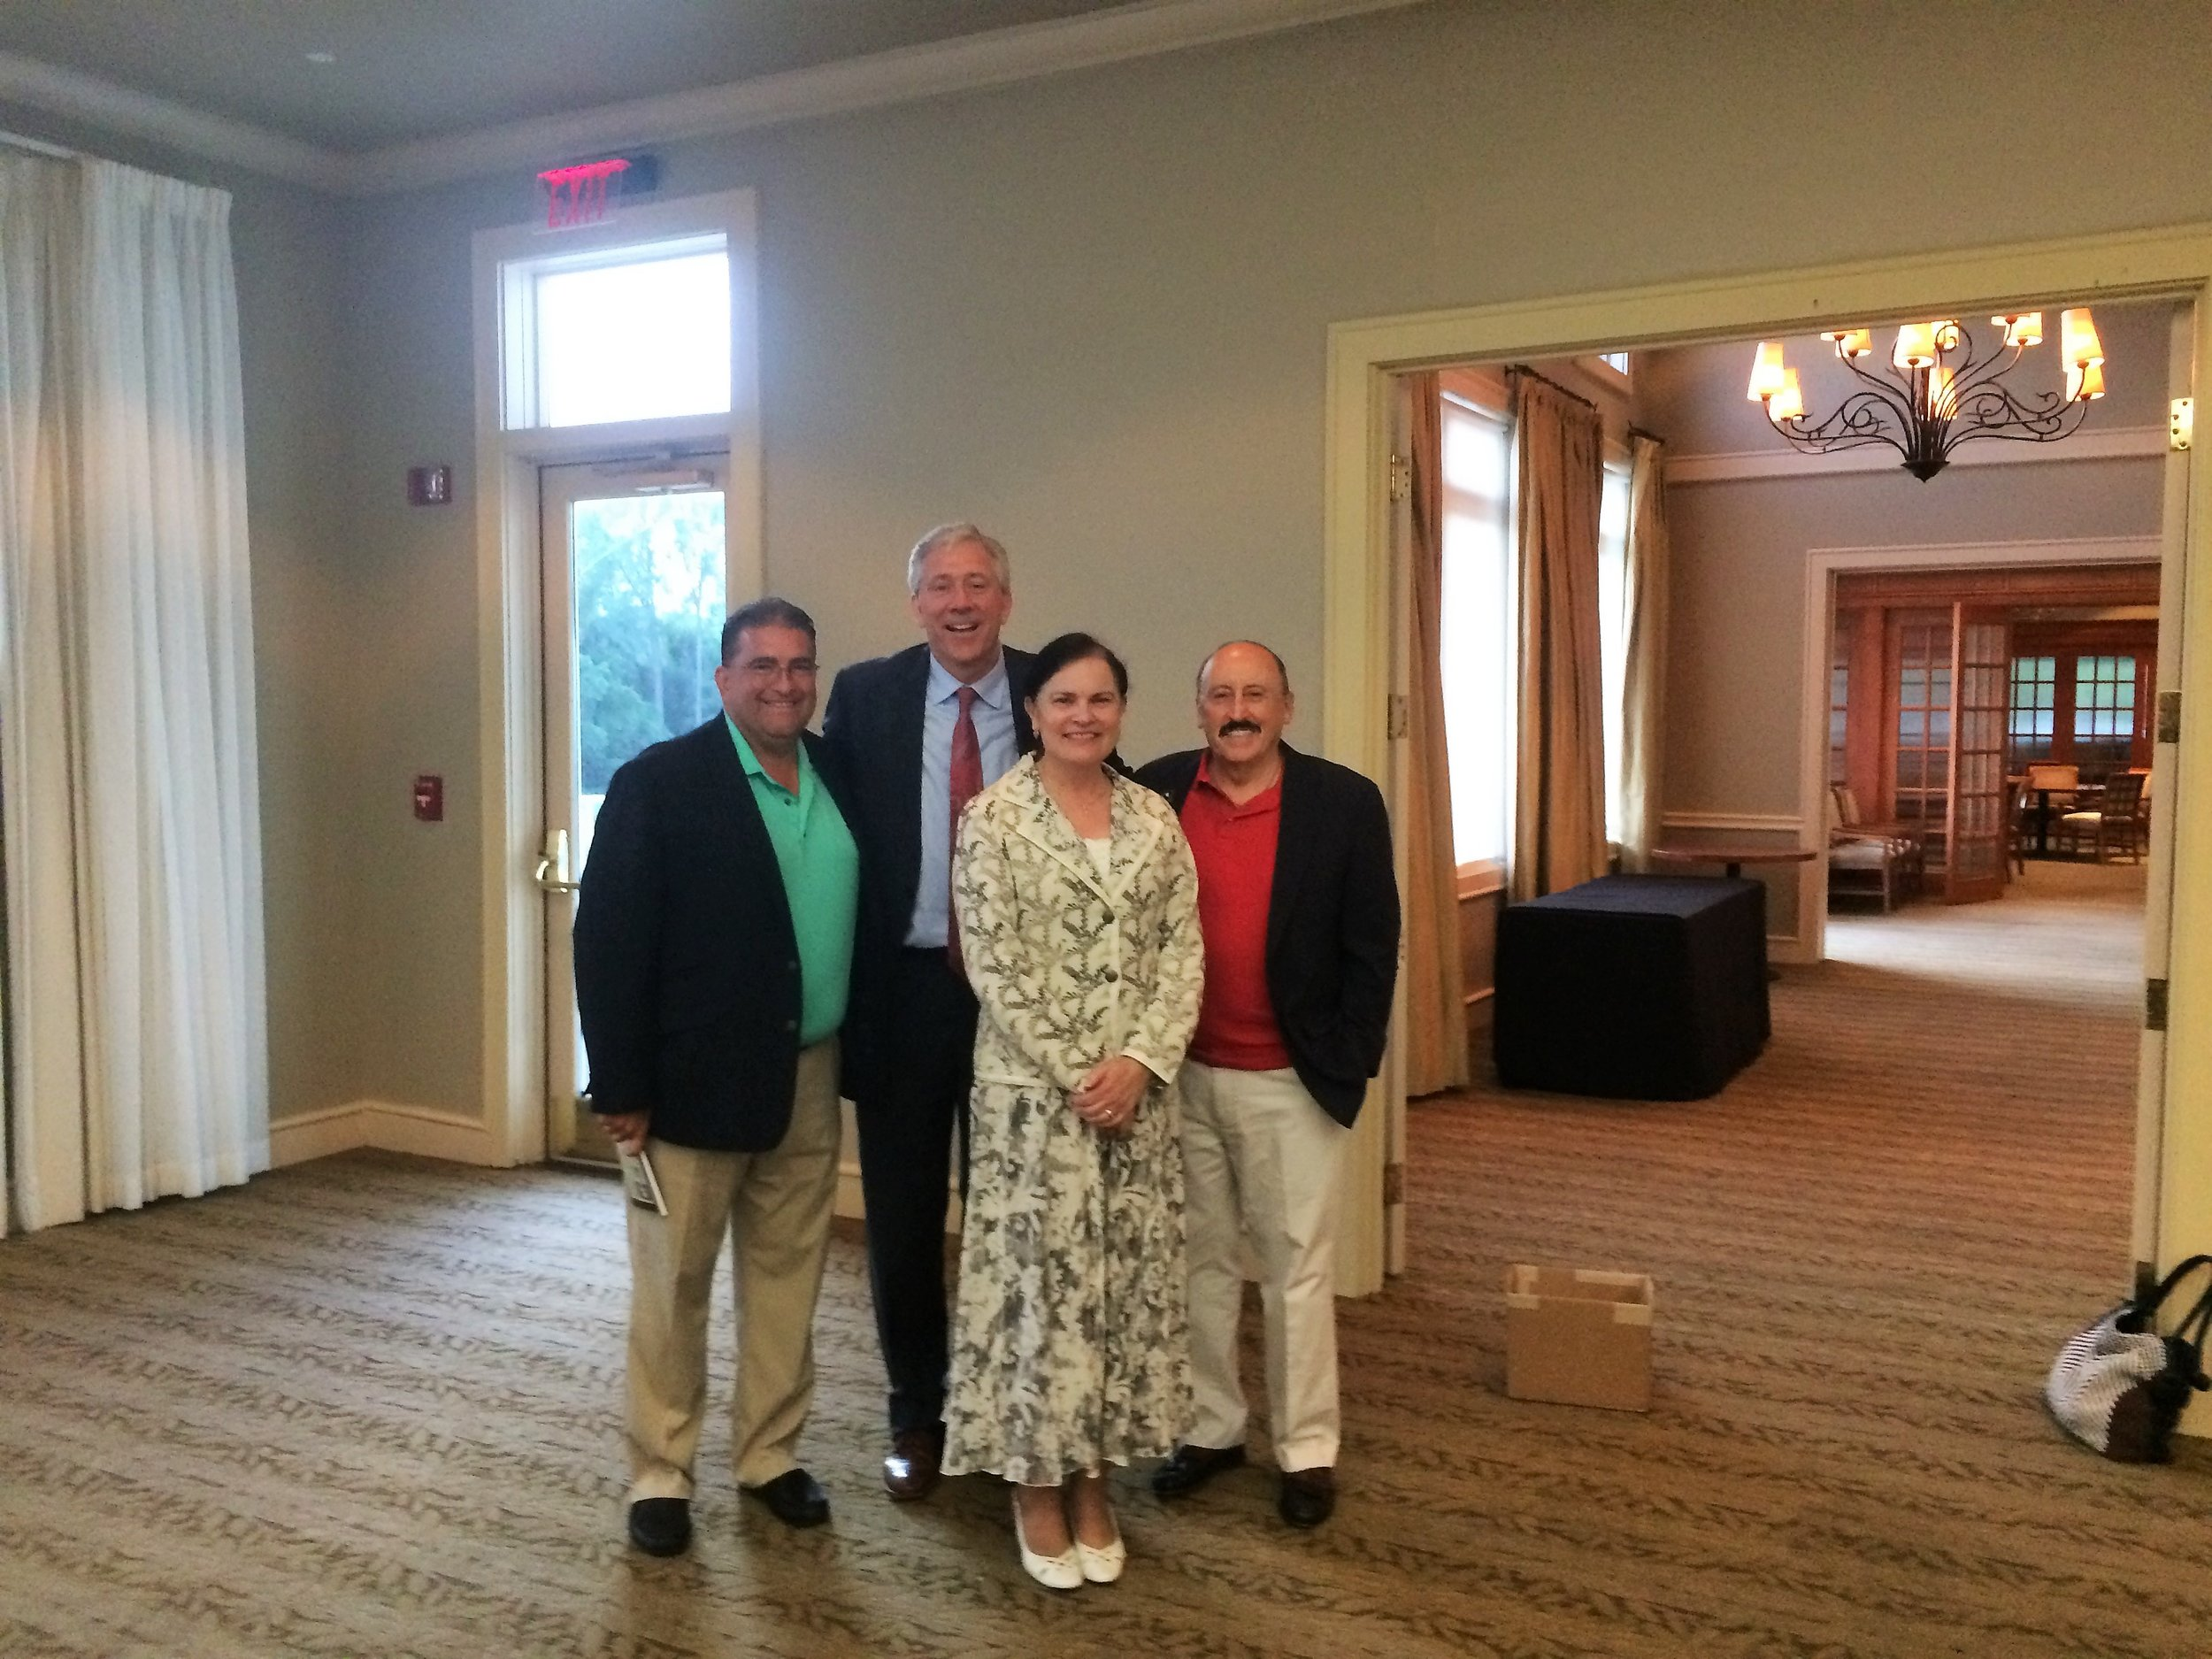 Jim and Kelly Ratliff hosted a very fun reception at the Hawthorns Golf and Country Club in Fishers. Jim is on the left in this picture -- we missed Kelly who had to hurry off to help the kids. We know how that goes. Getting to know lots of great people brings joy to this campaign.